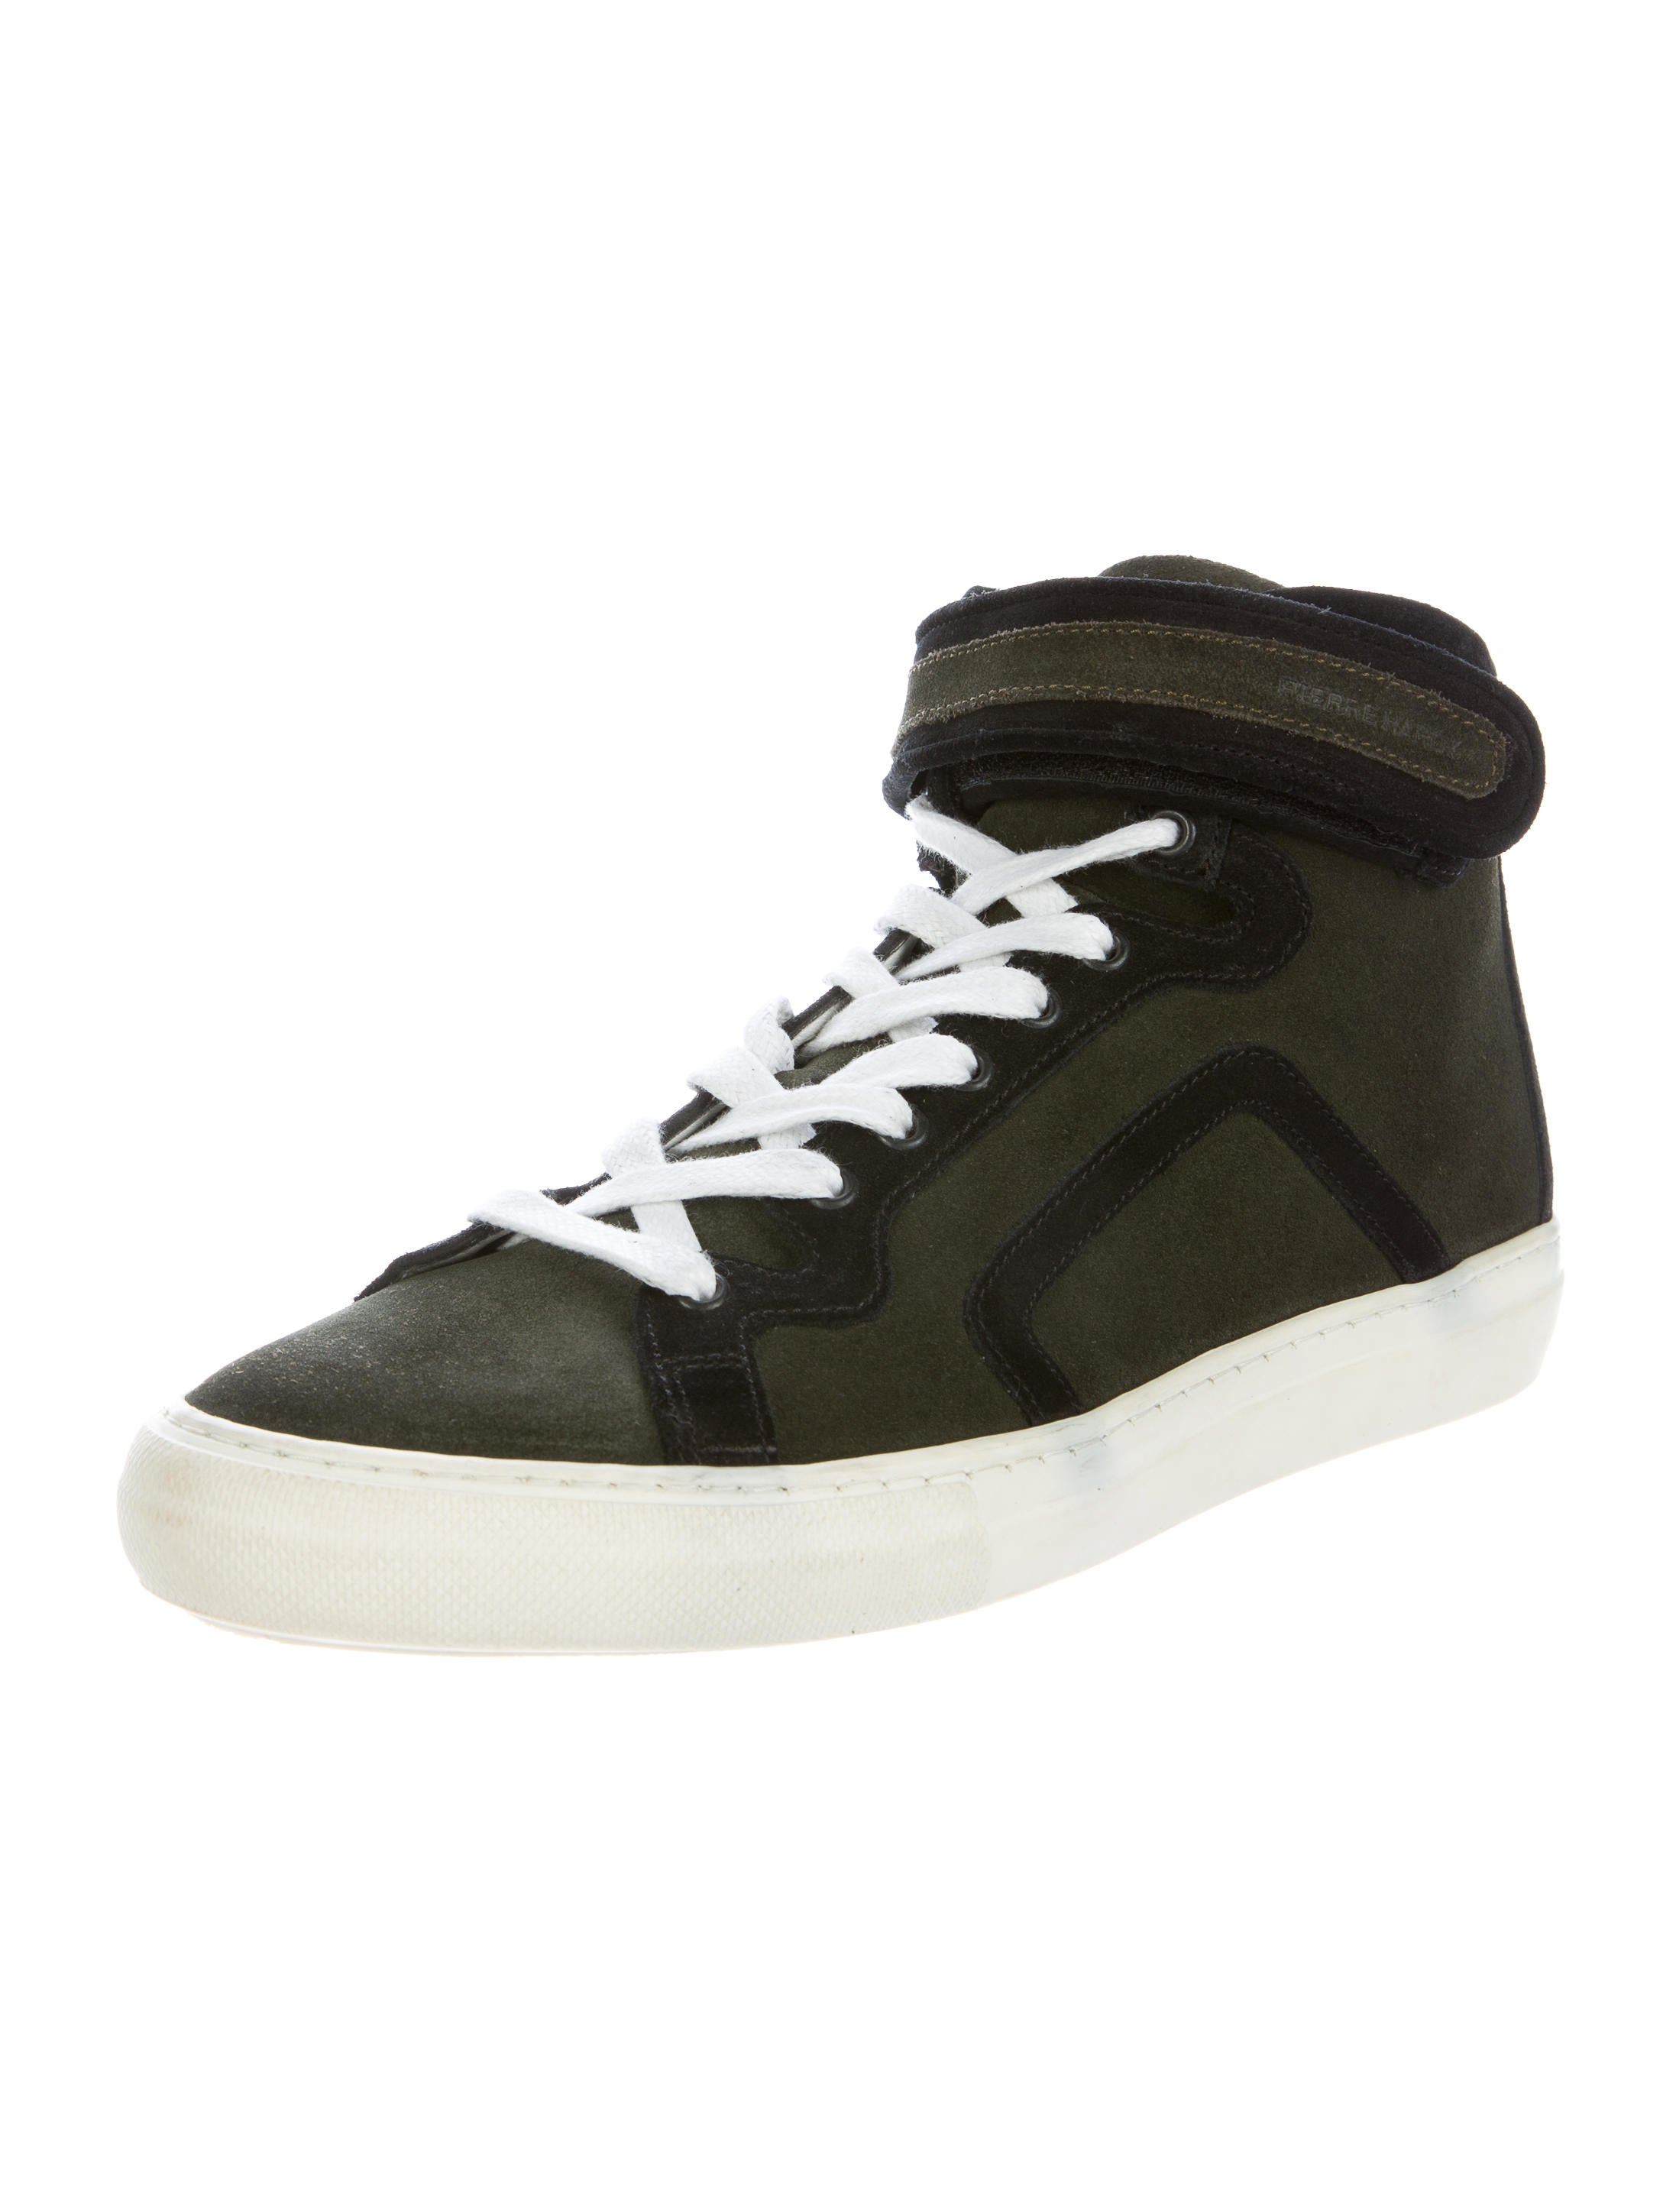 pierre hardy suede high top sneakers shoes pie23862 the realreal. Black Bedroom Furniture Sets. Home Design Ideas